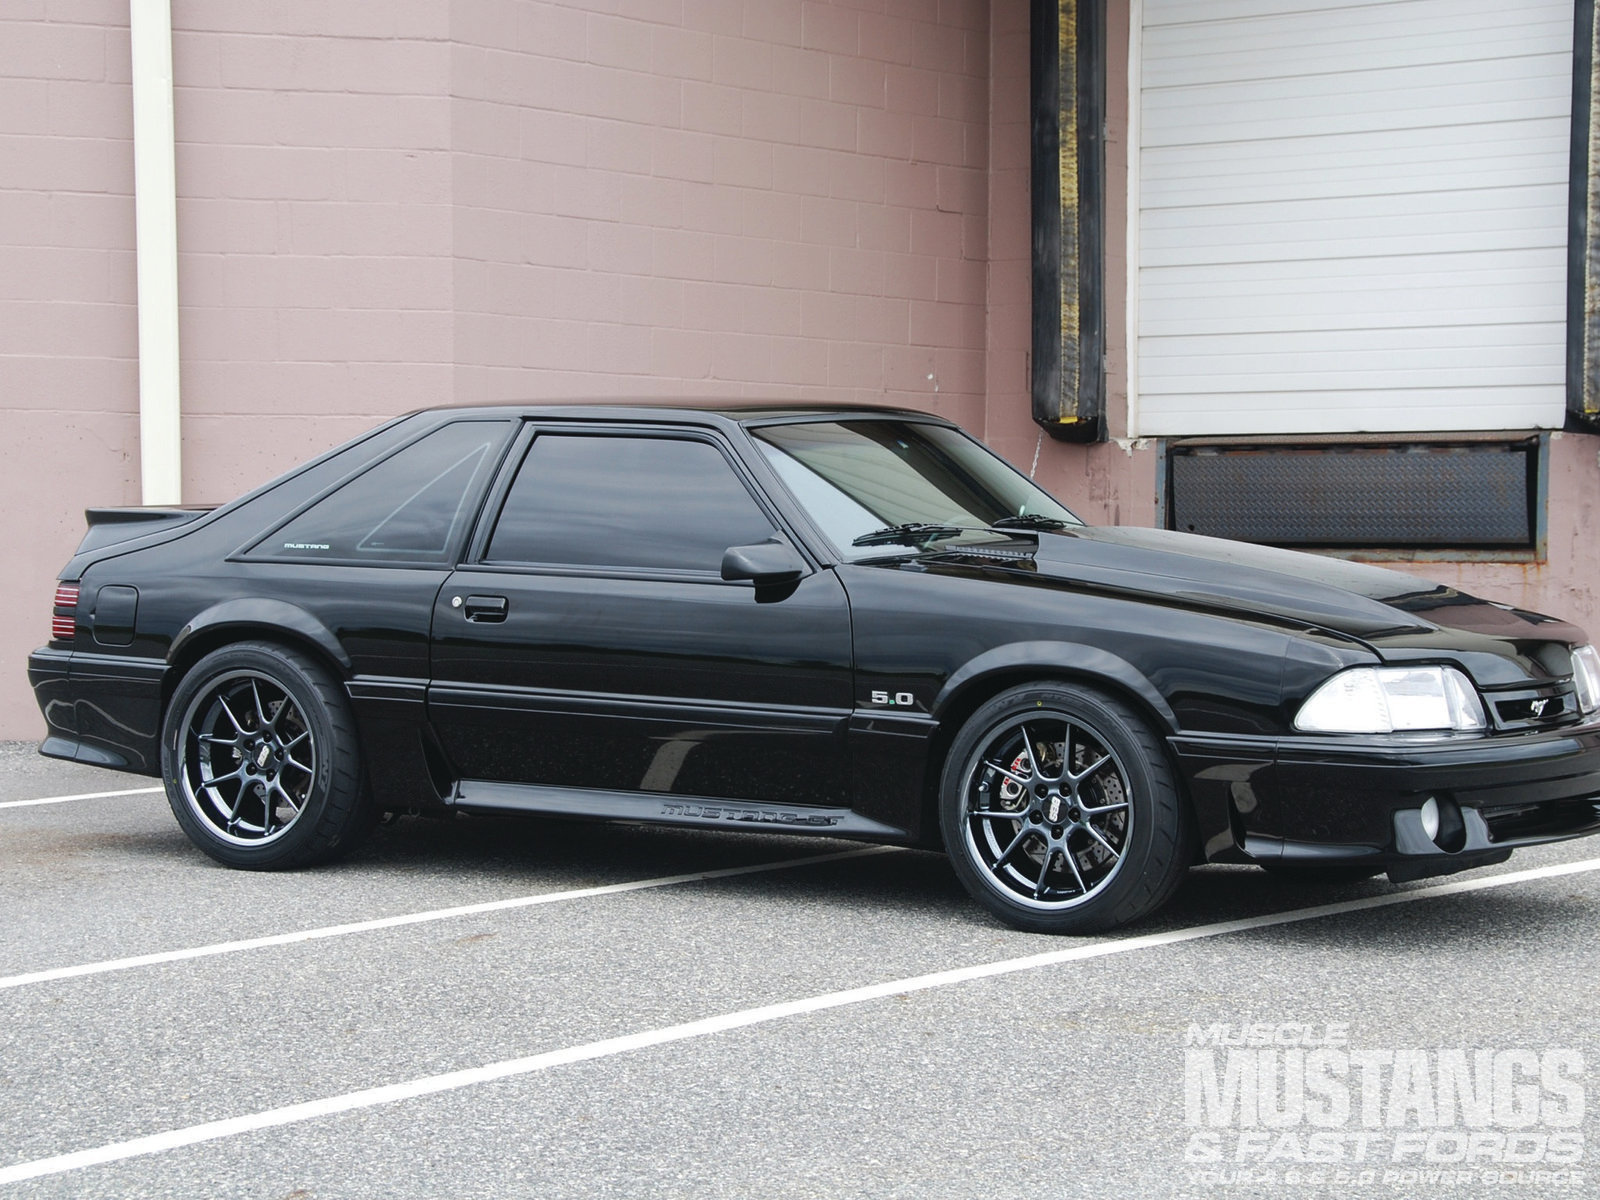 1993 Ford Mustang GT Front Three